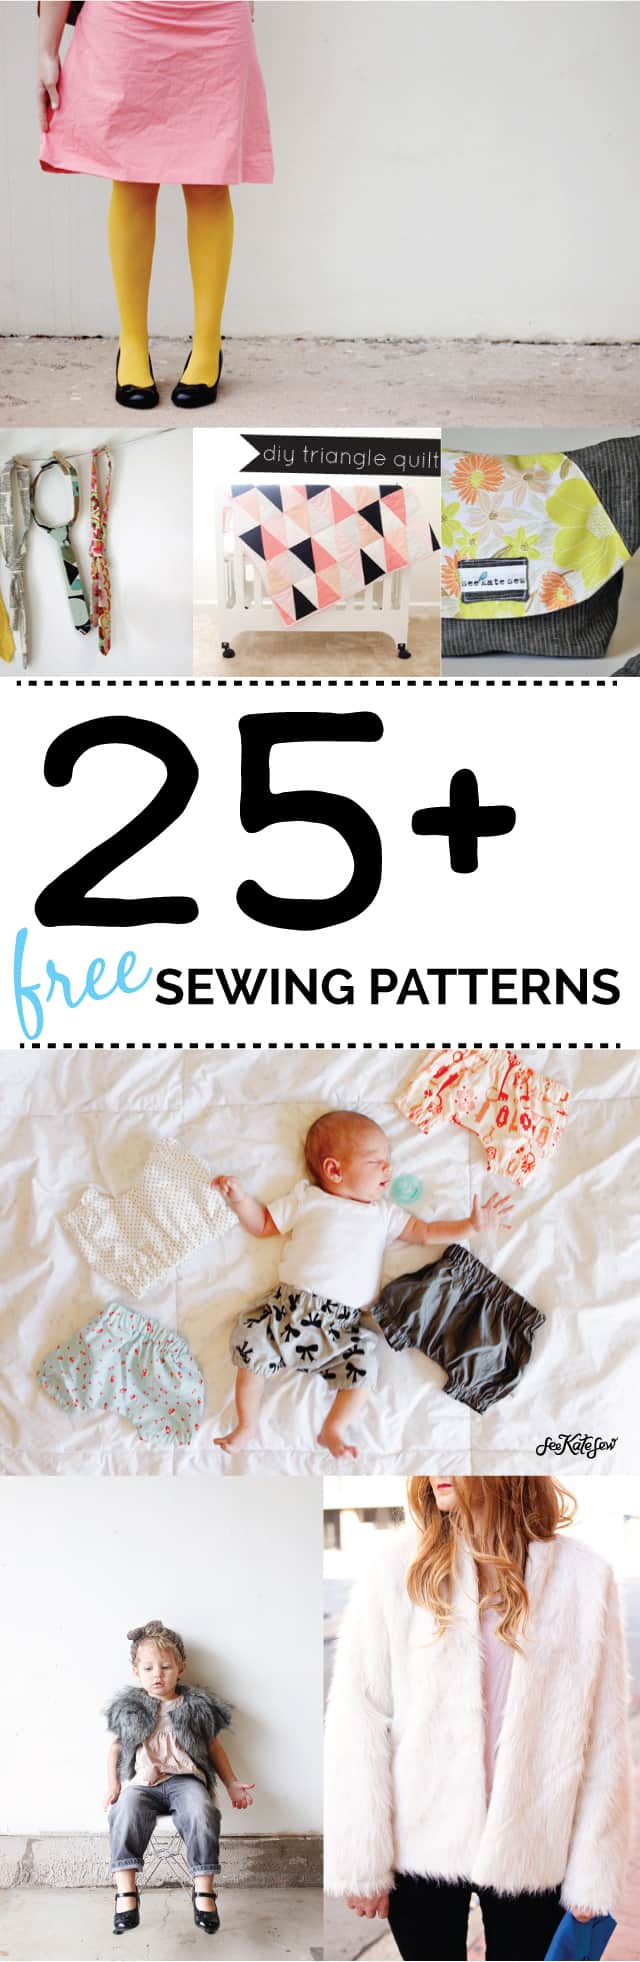 25 FREE SEWING PATTERNS | free sewing tips | sewing patterns and tutorials | free sewing tutorials || See Kate Sew #freesewingpattern #freesewingtutorial #sewingtips